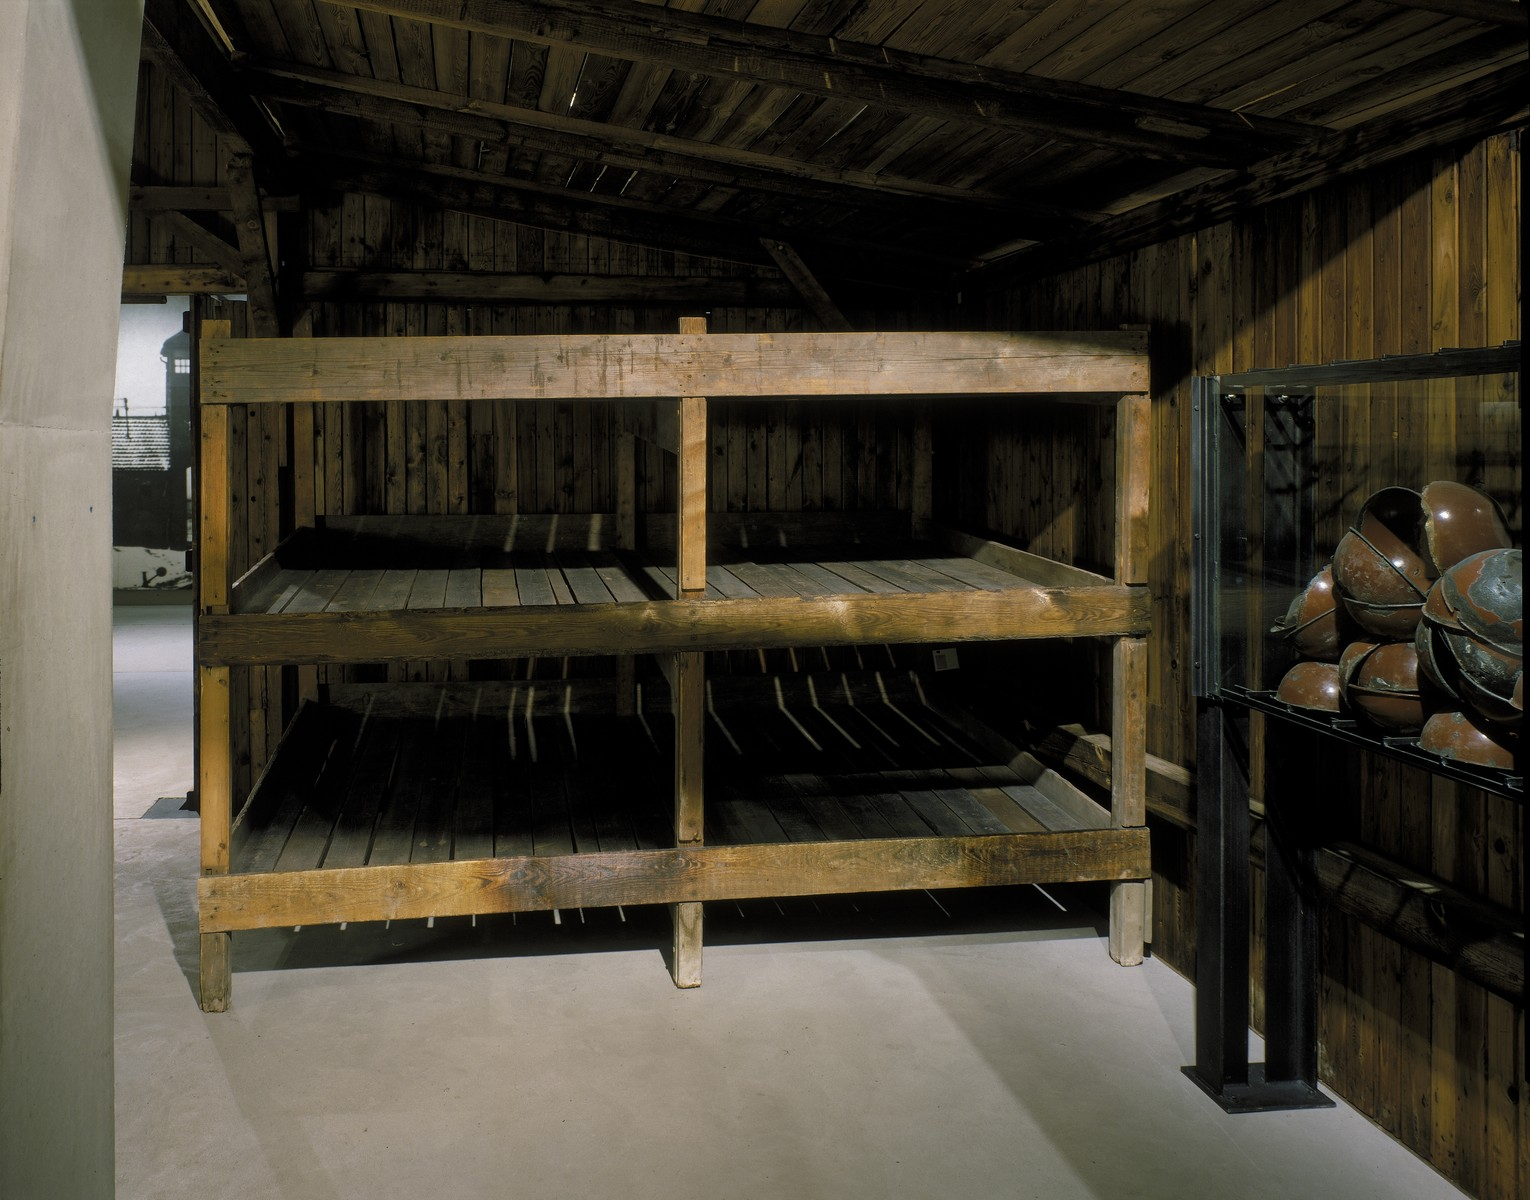 Prisoner bunks and food bowls in the reconstructed Auschwitz prisoner barracks displayed on the third floor of the permanent exhibition at the U.S. Holocaust Memorial Museum.